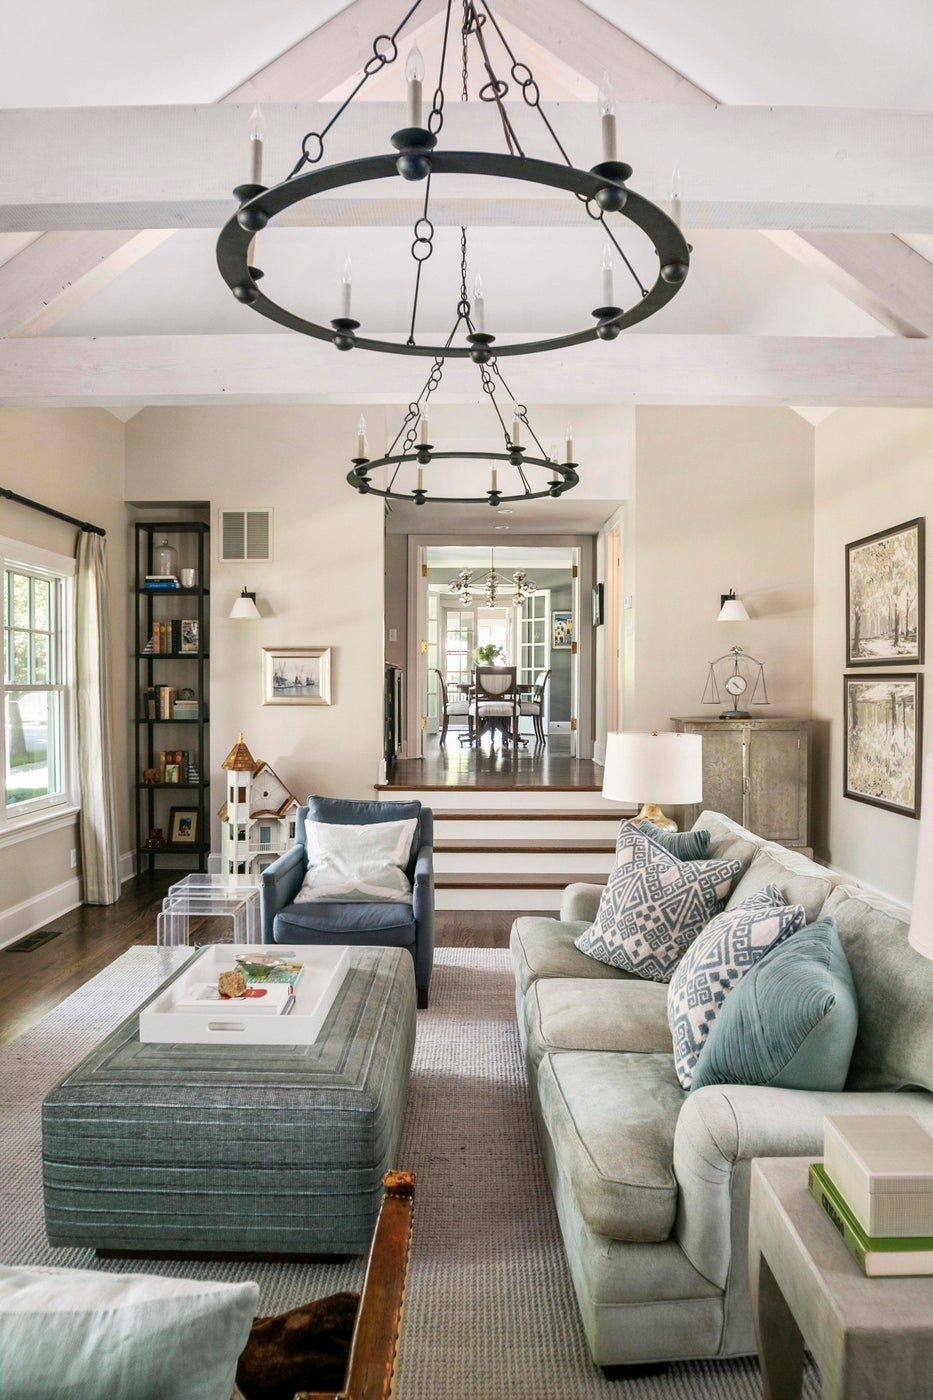 North End Boise family room exposed beams, pair chandeliers & green sofa